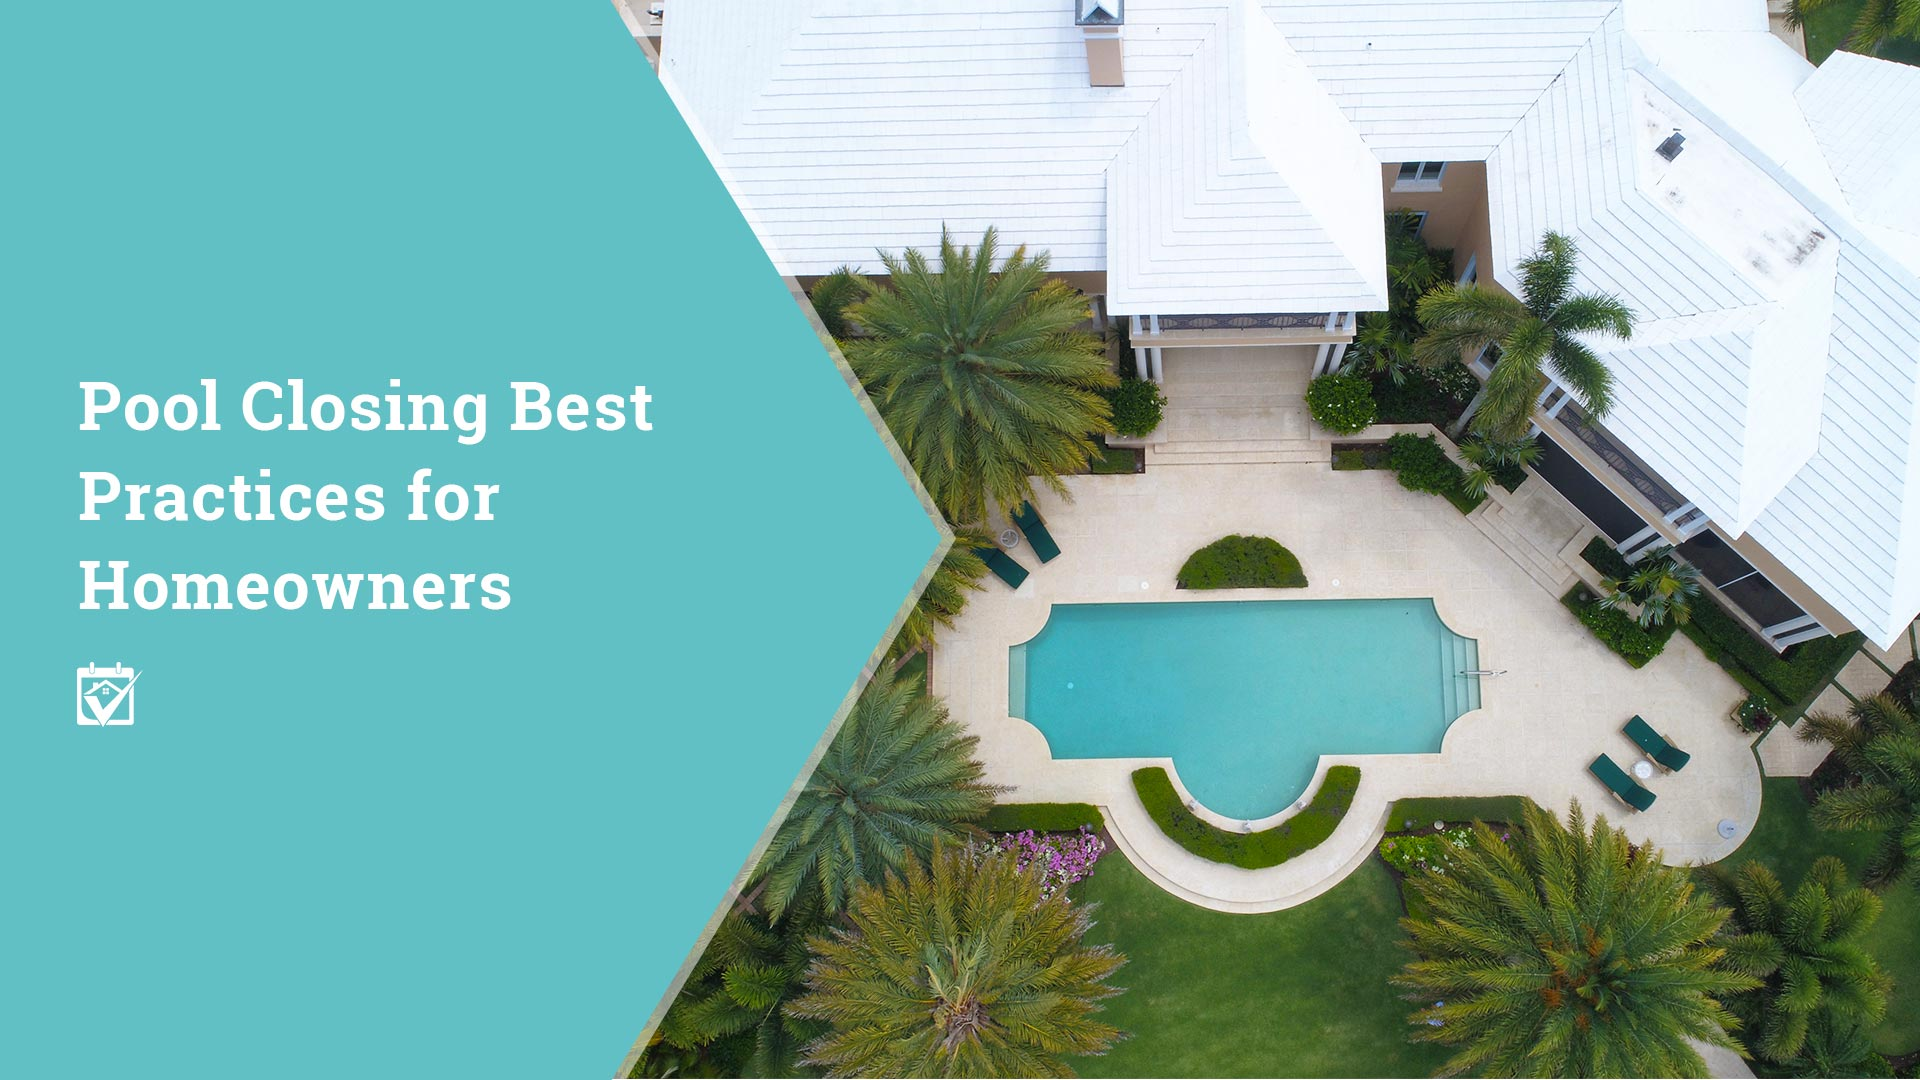 Best Practices for Closing your pool for the Winter!